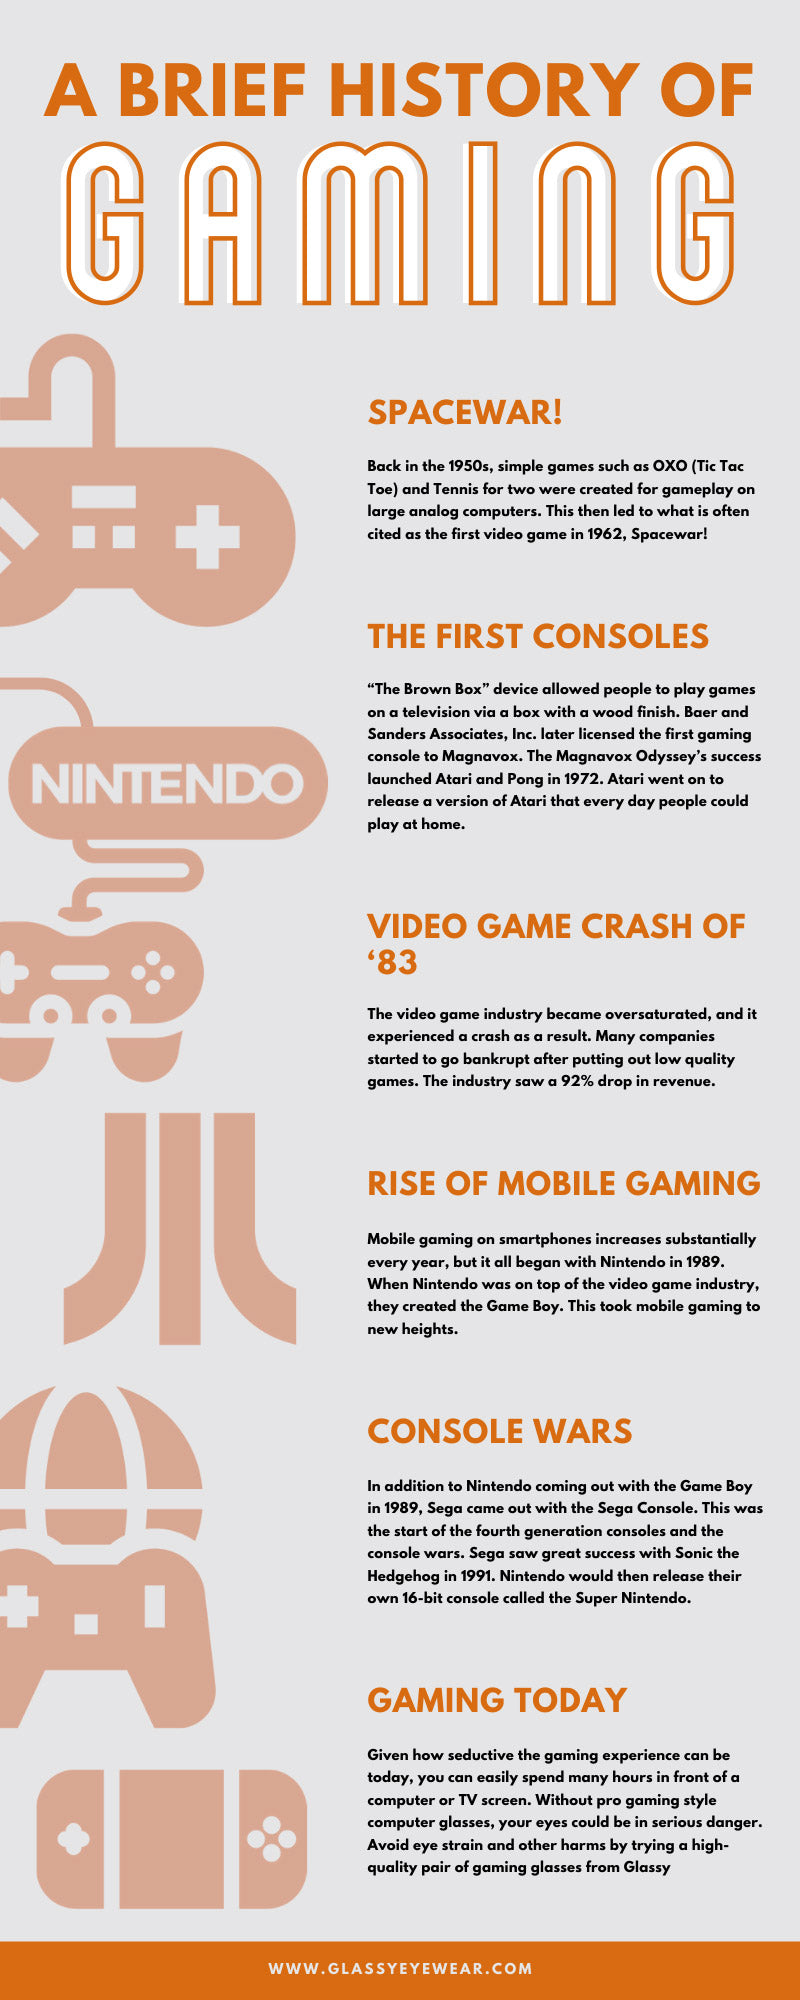 A Brief History of Gaming infographic